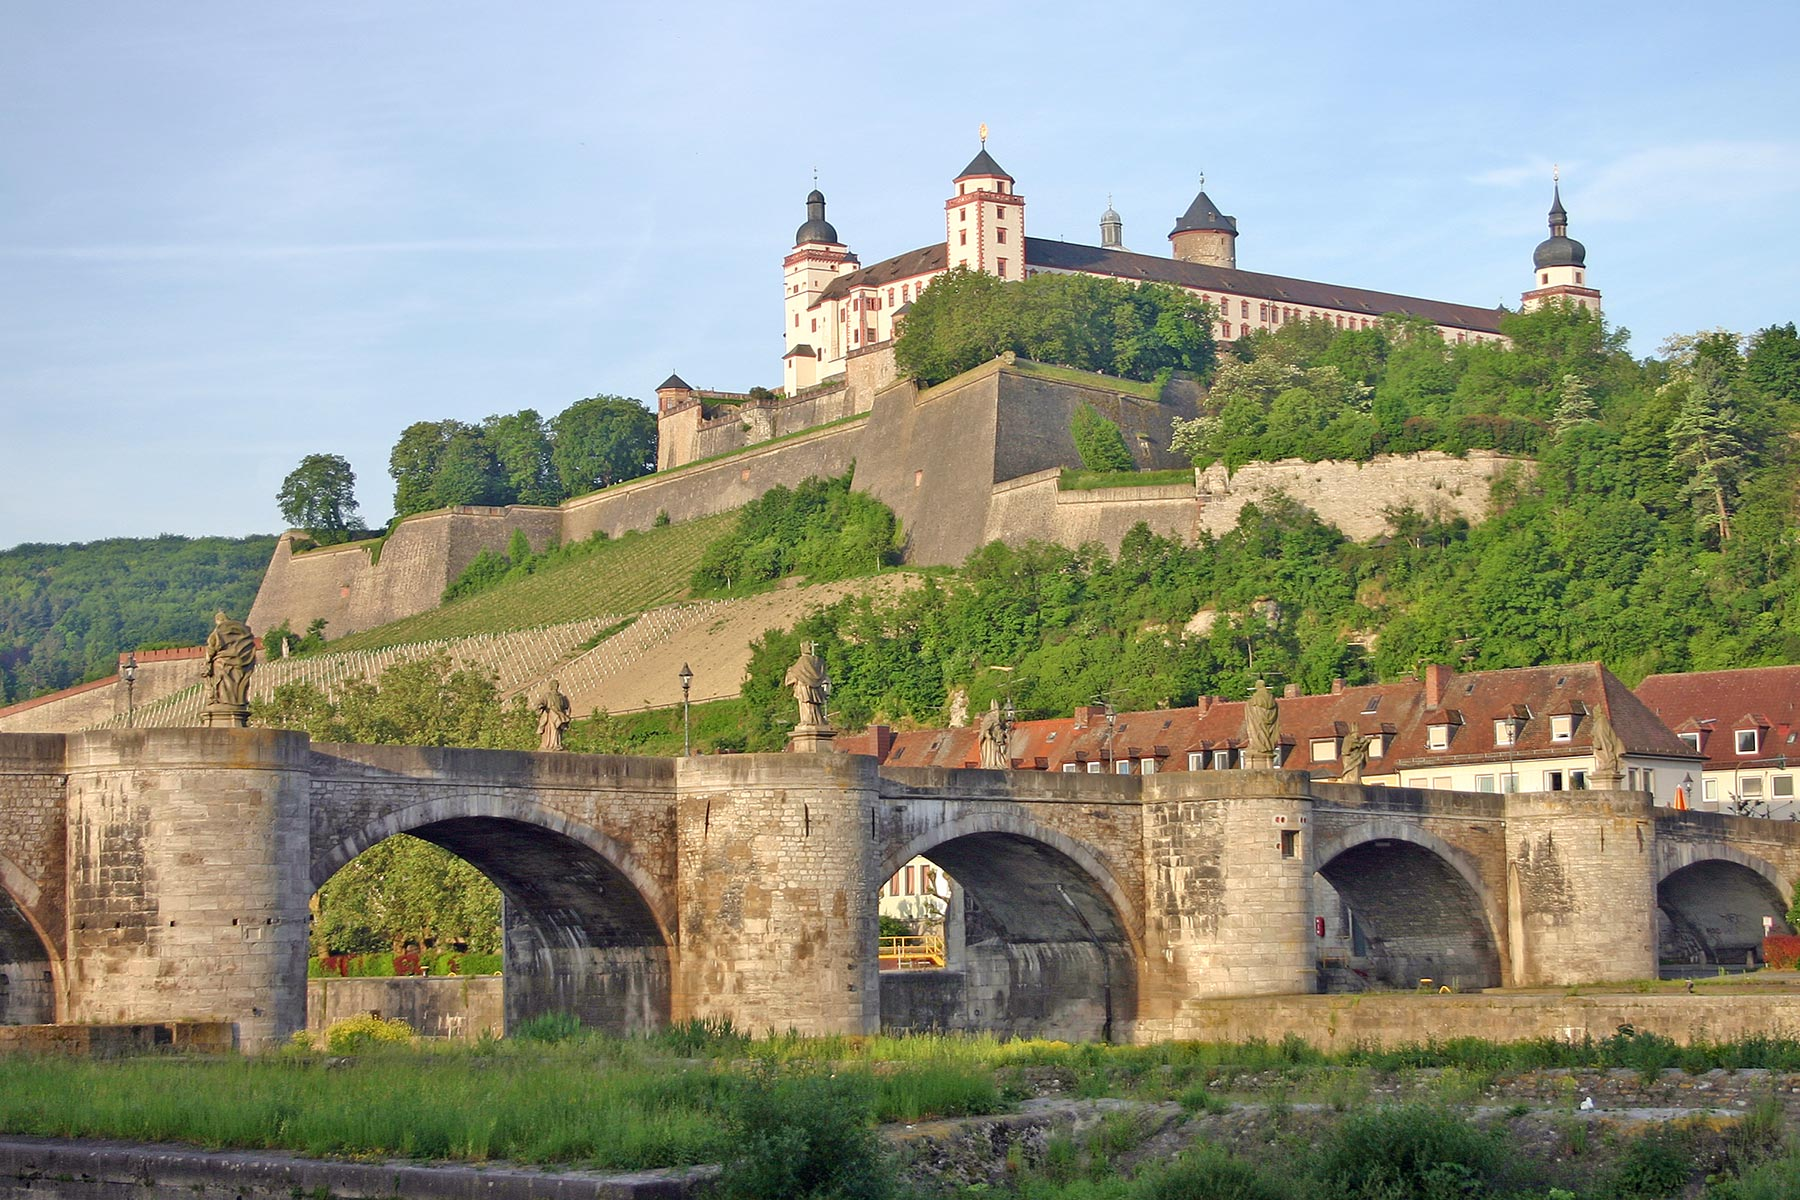 Würzburg (photo by Christian Horvat)